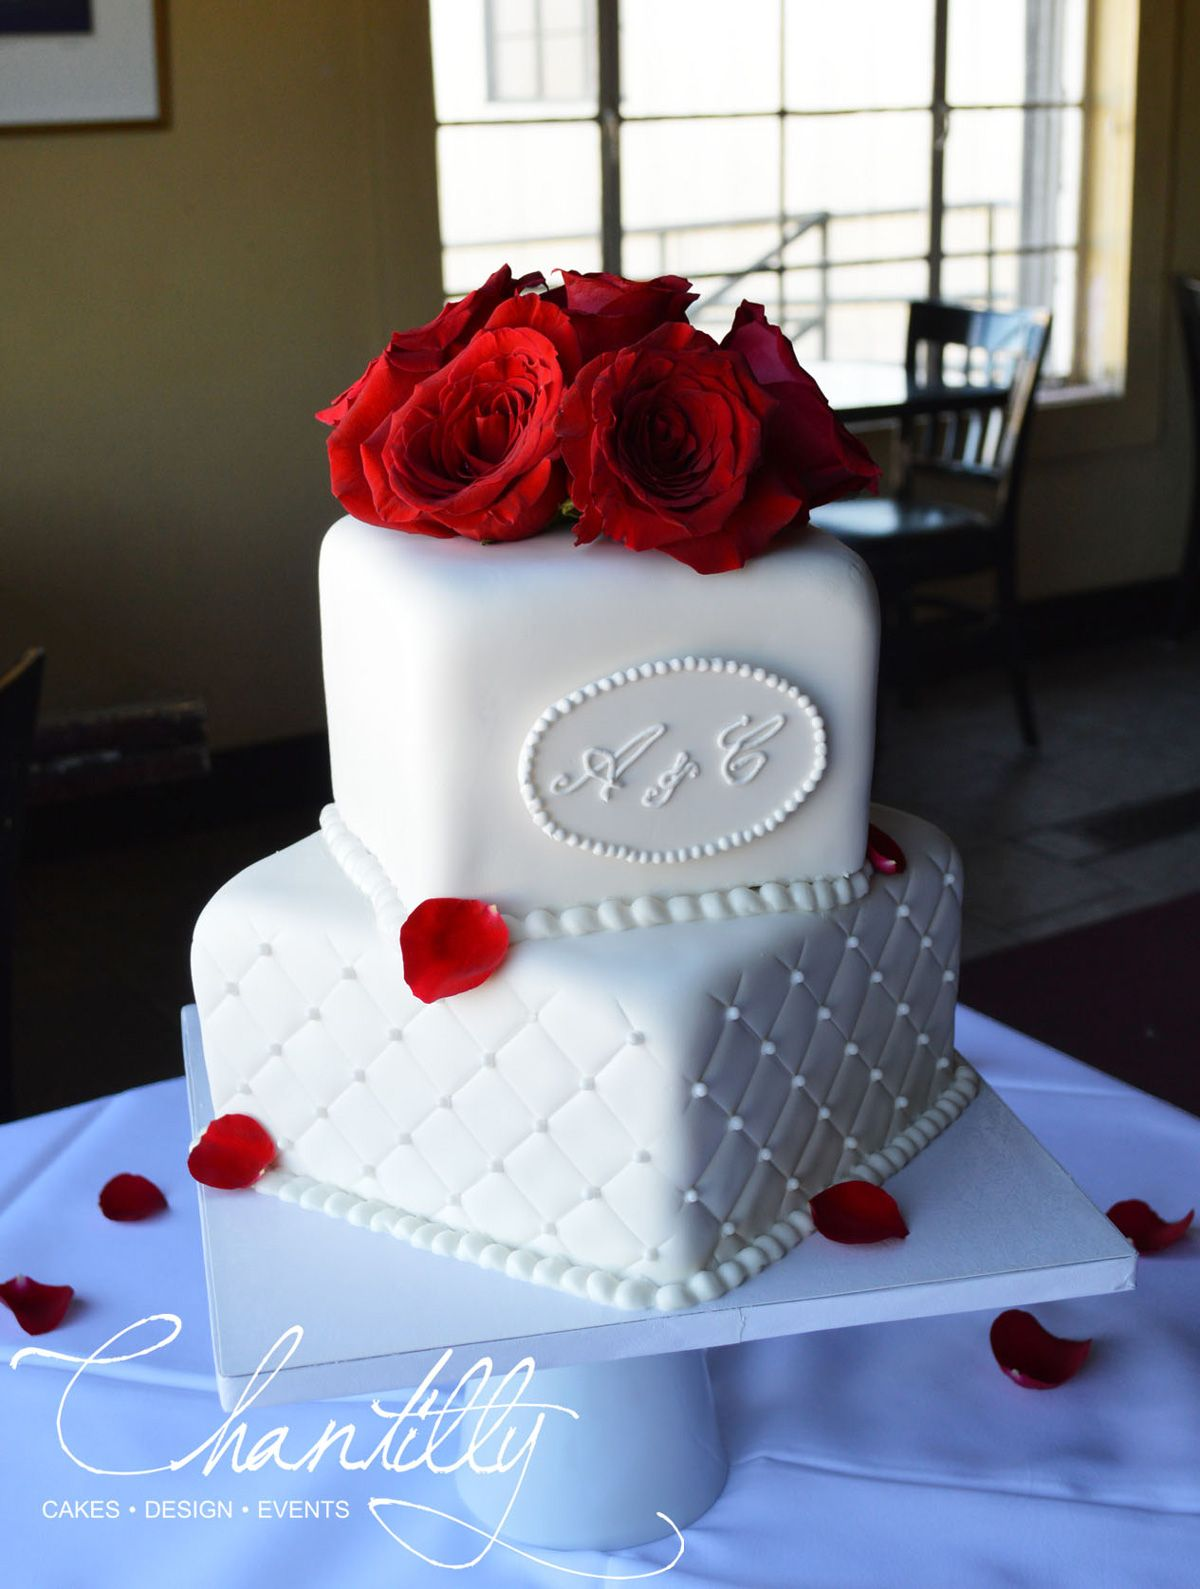 Two Tier Wedding Cake Chantilly Cakes The perfect